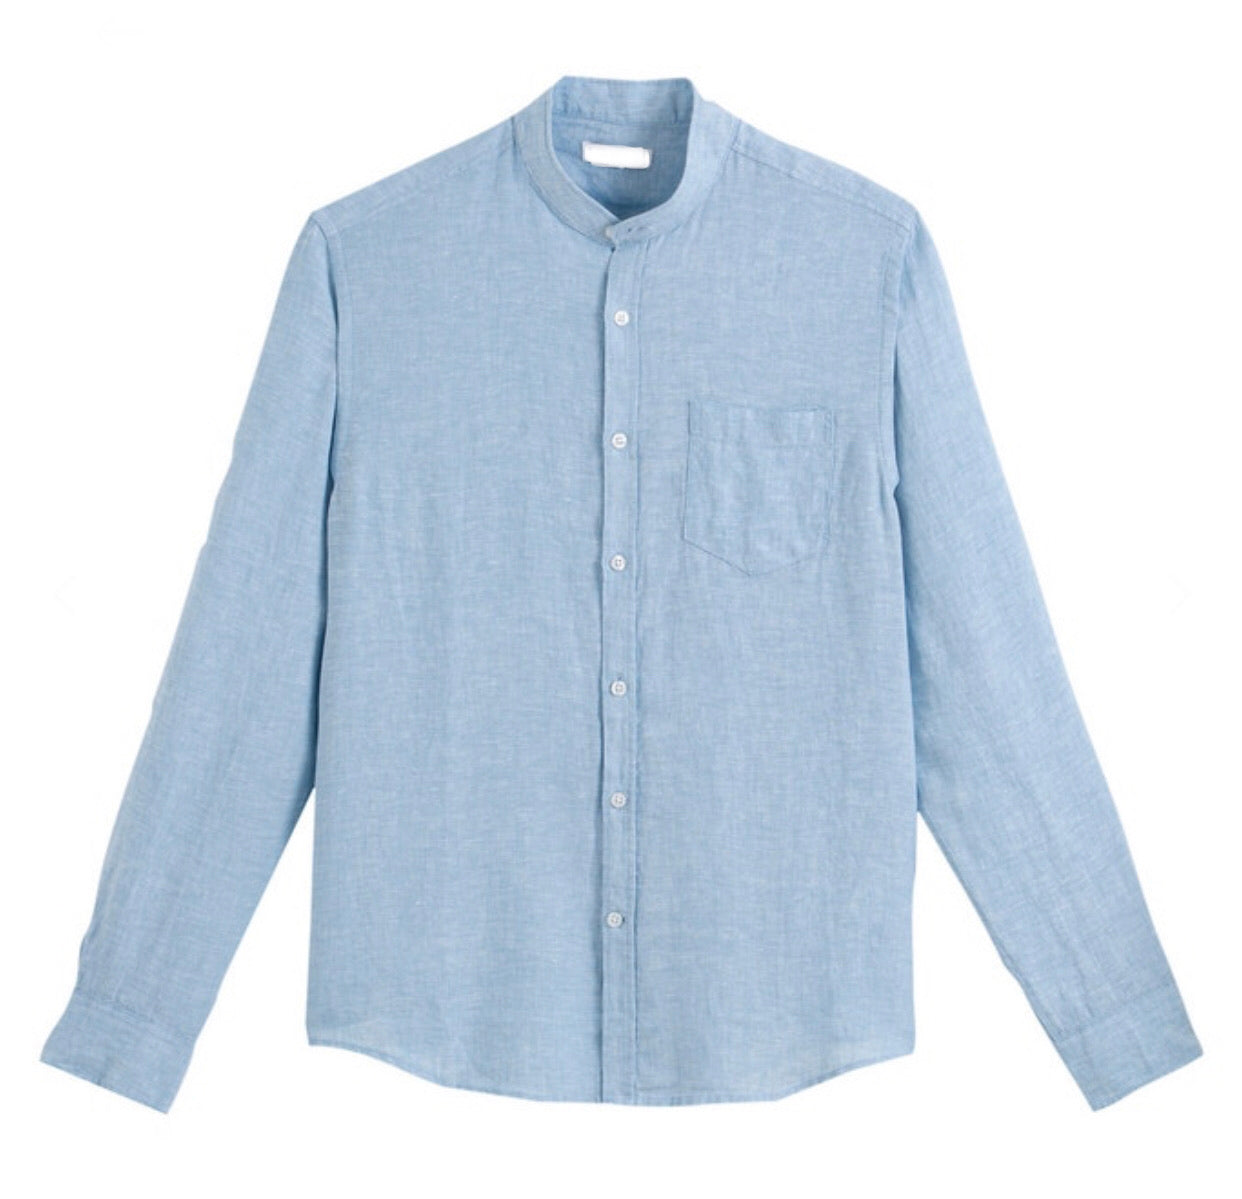 The Summer Linen Mandarin Shirt - Up to Size XXXL